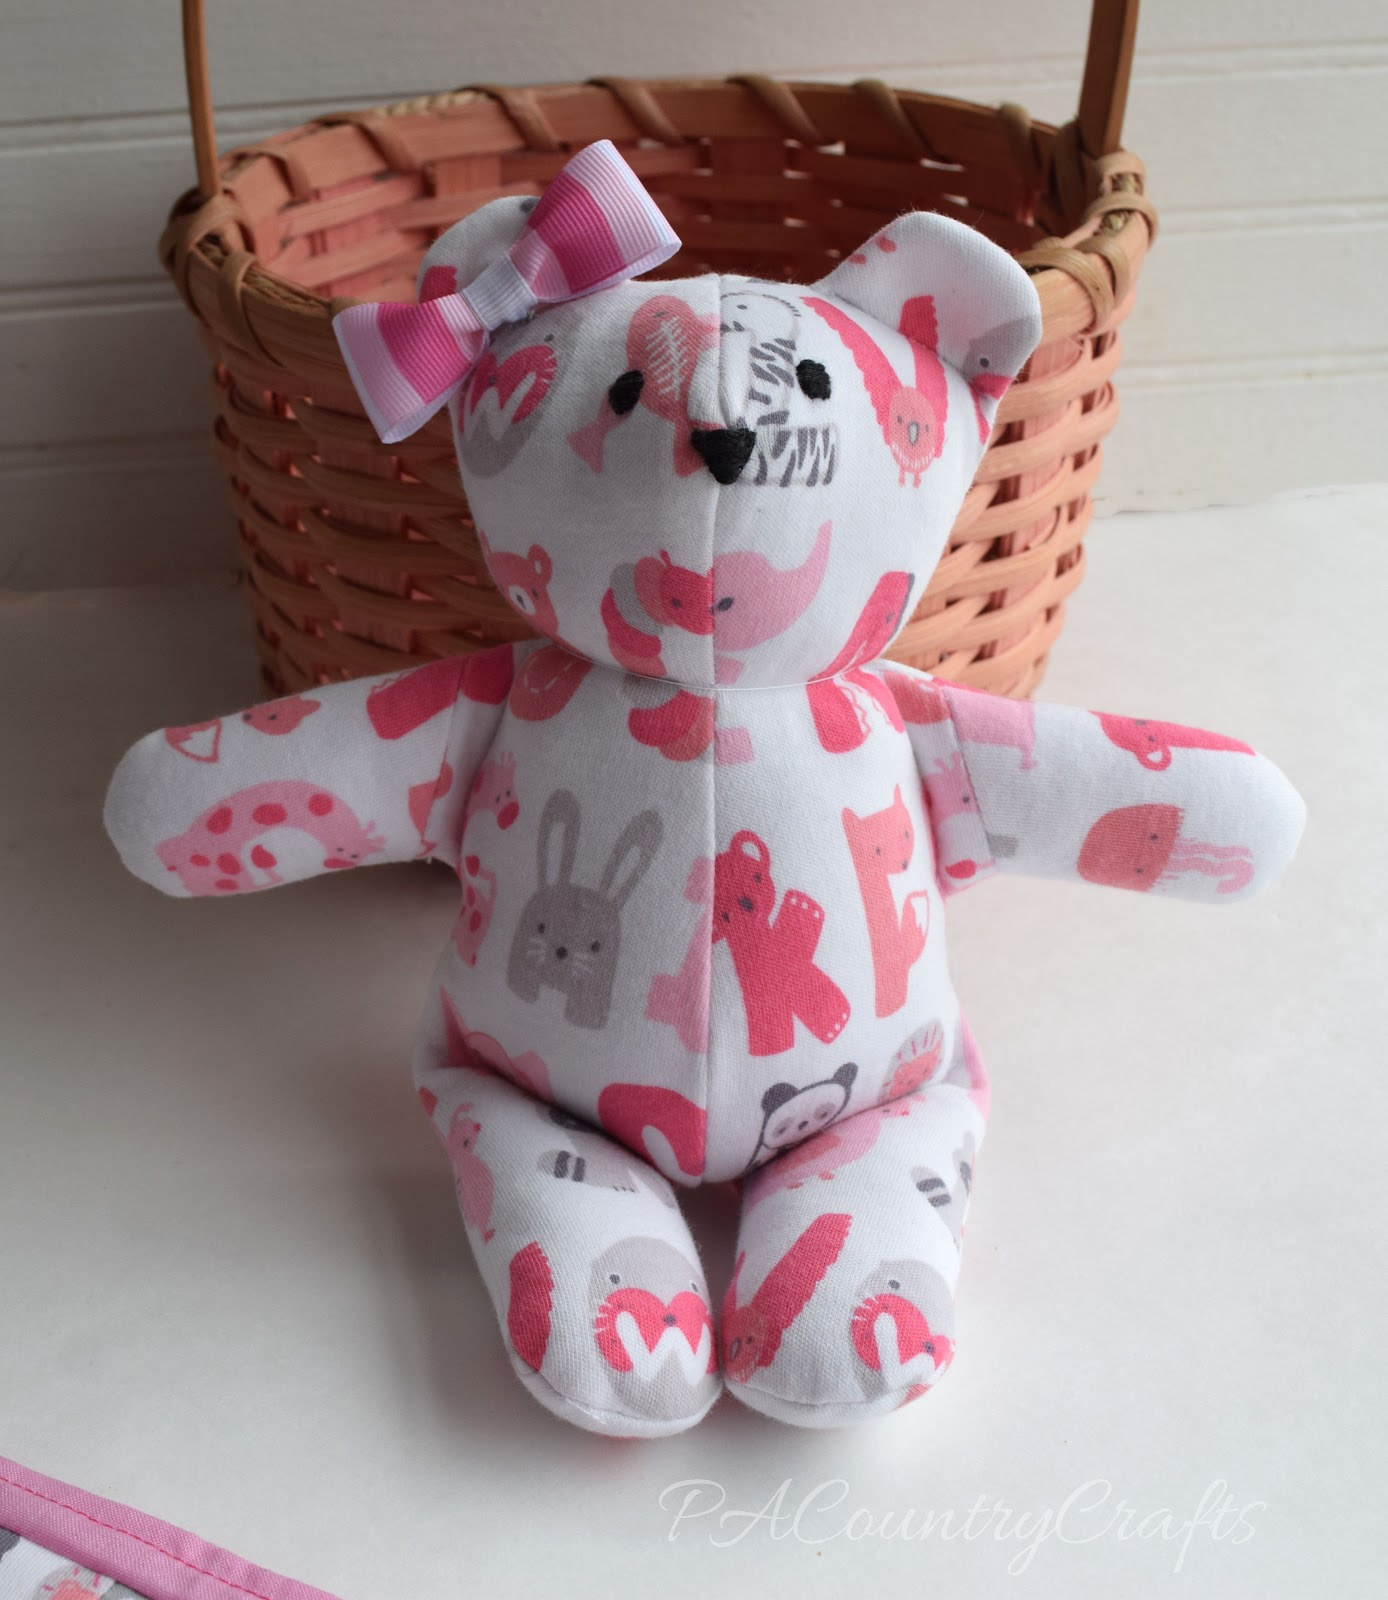 The finished bear measures about 8 high these bears were made with a